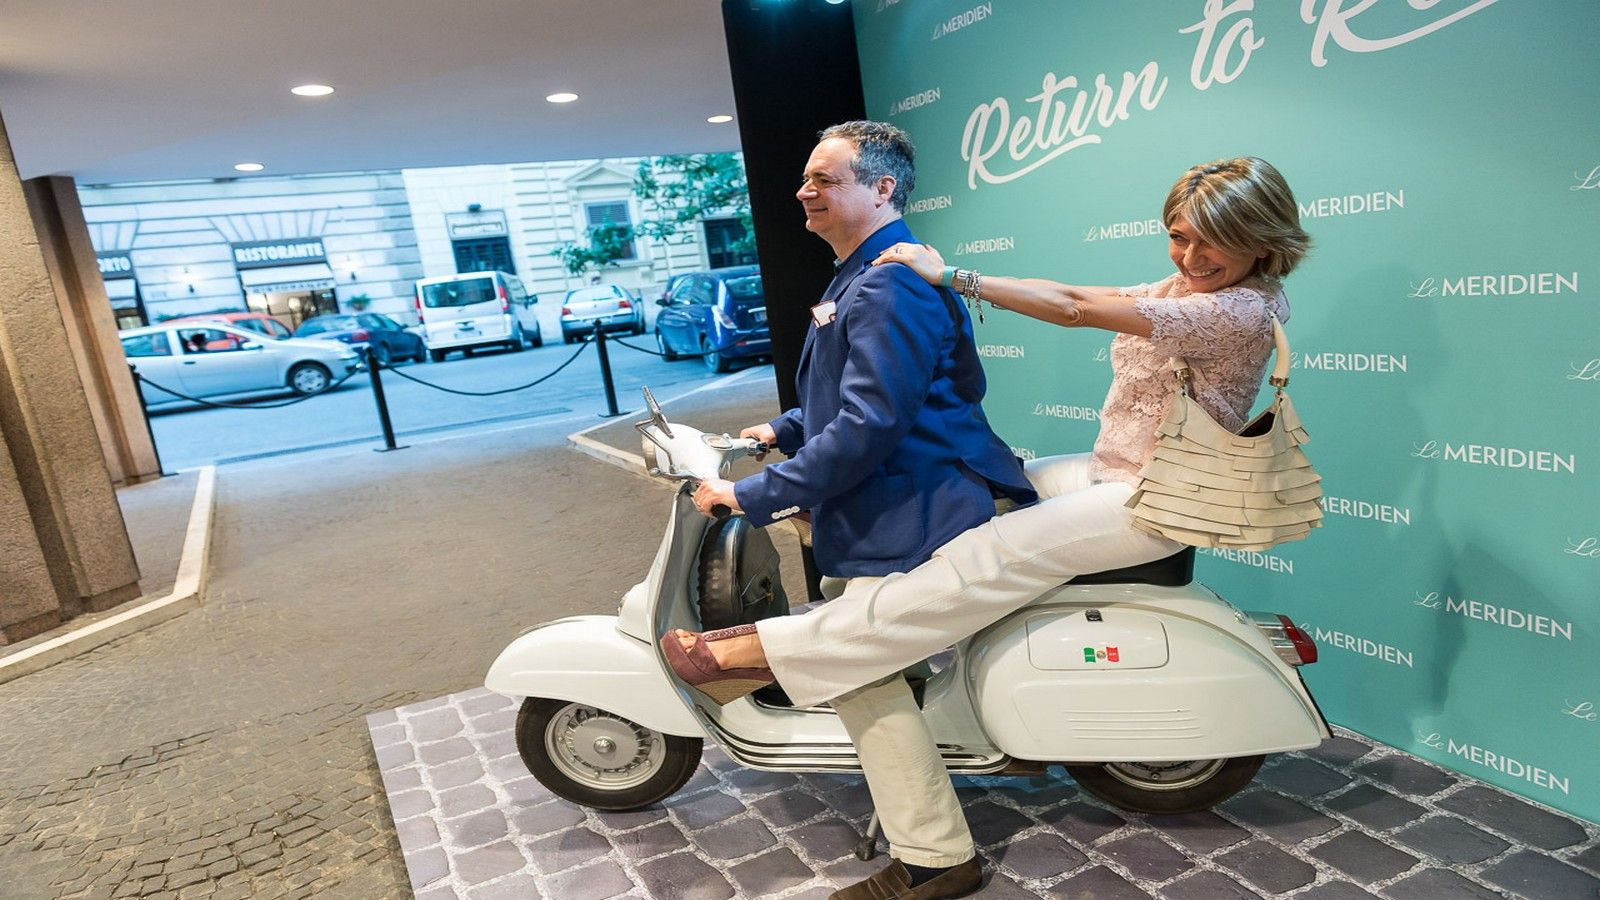 le meridien vespa at the entrance